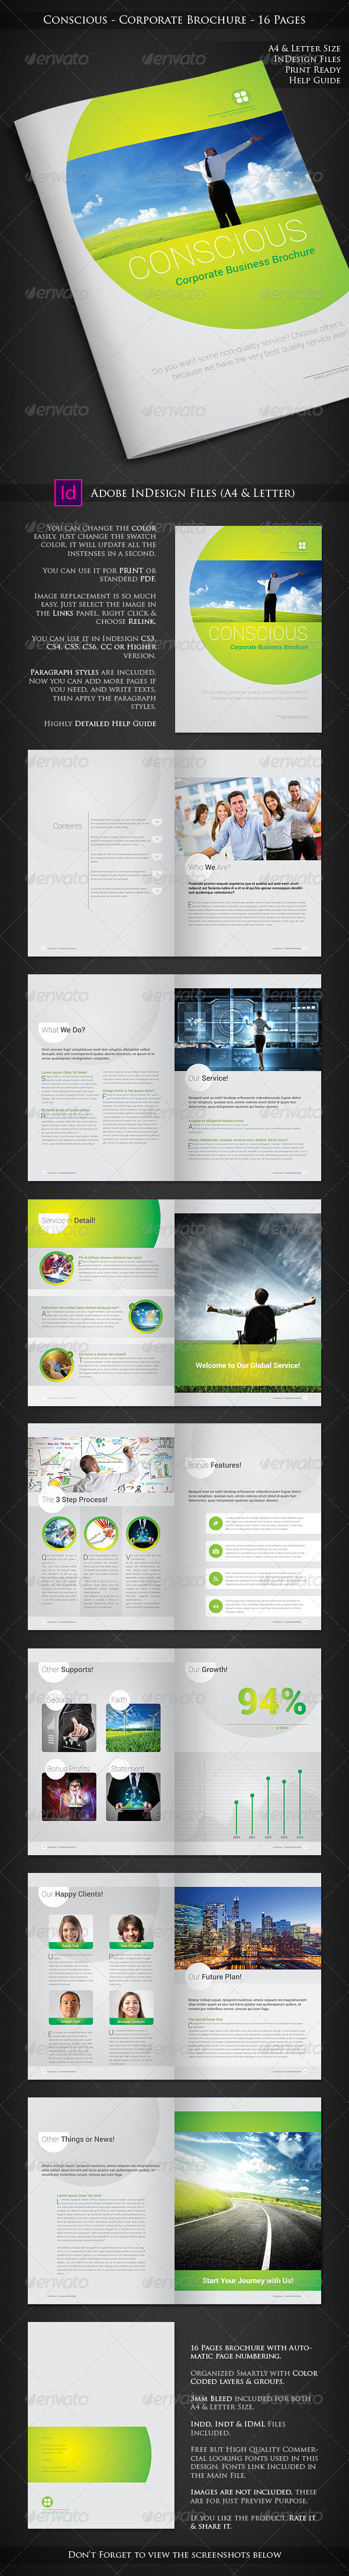 Conscious - Corporate Brochure Design - 16 Pages